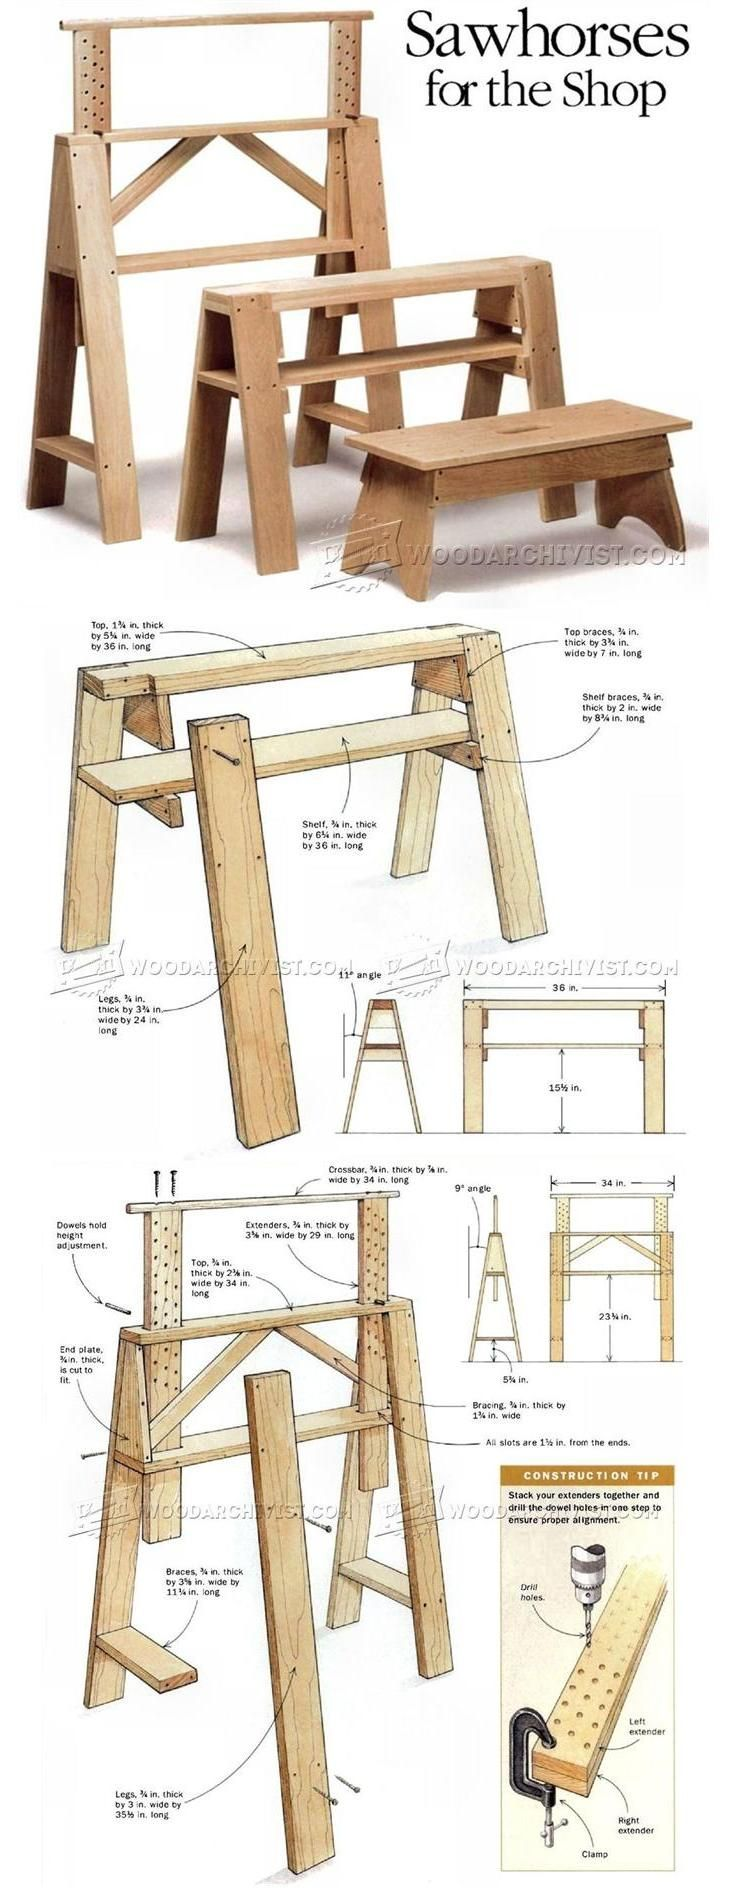 Sawhorses for The Shop - Workshop Solutions Plans, Tips and Tricks   WoodArchivist.com